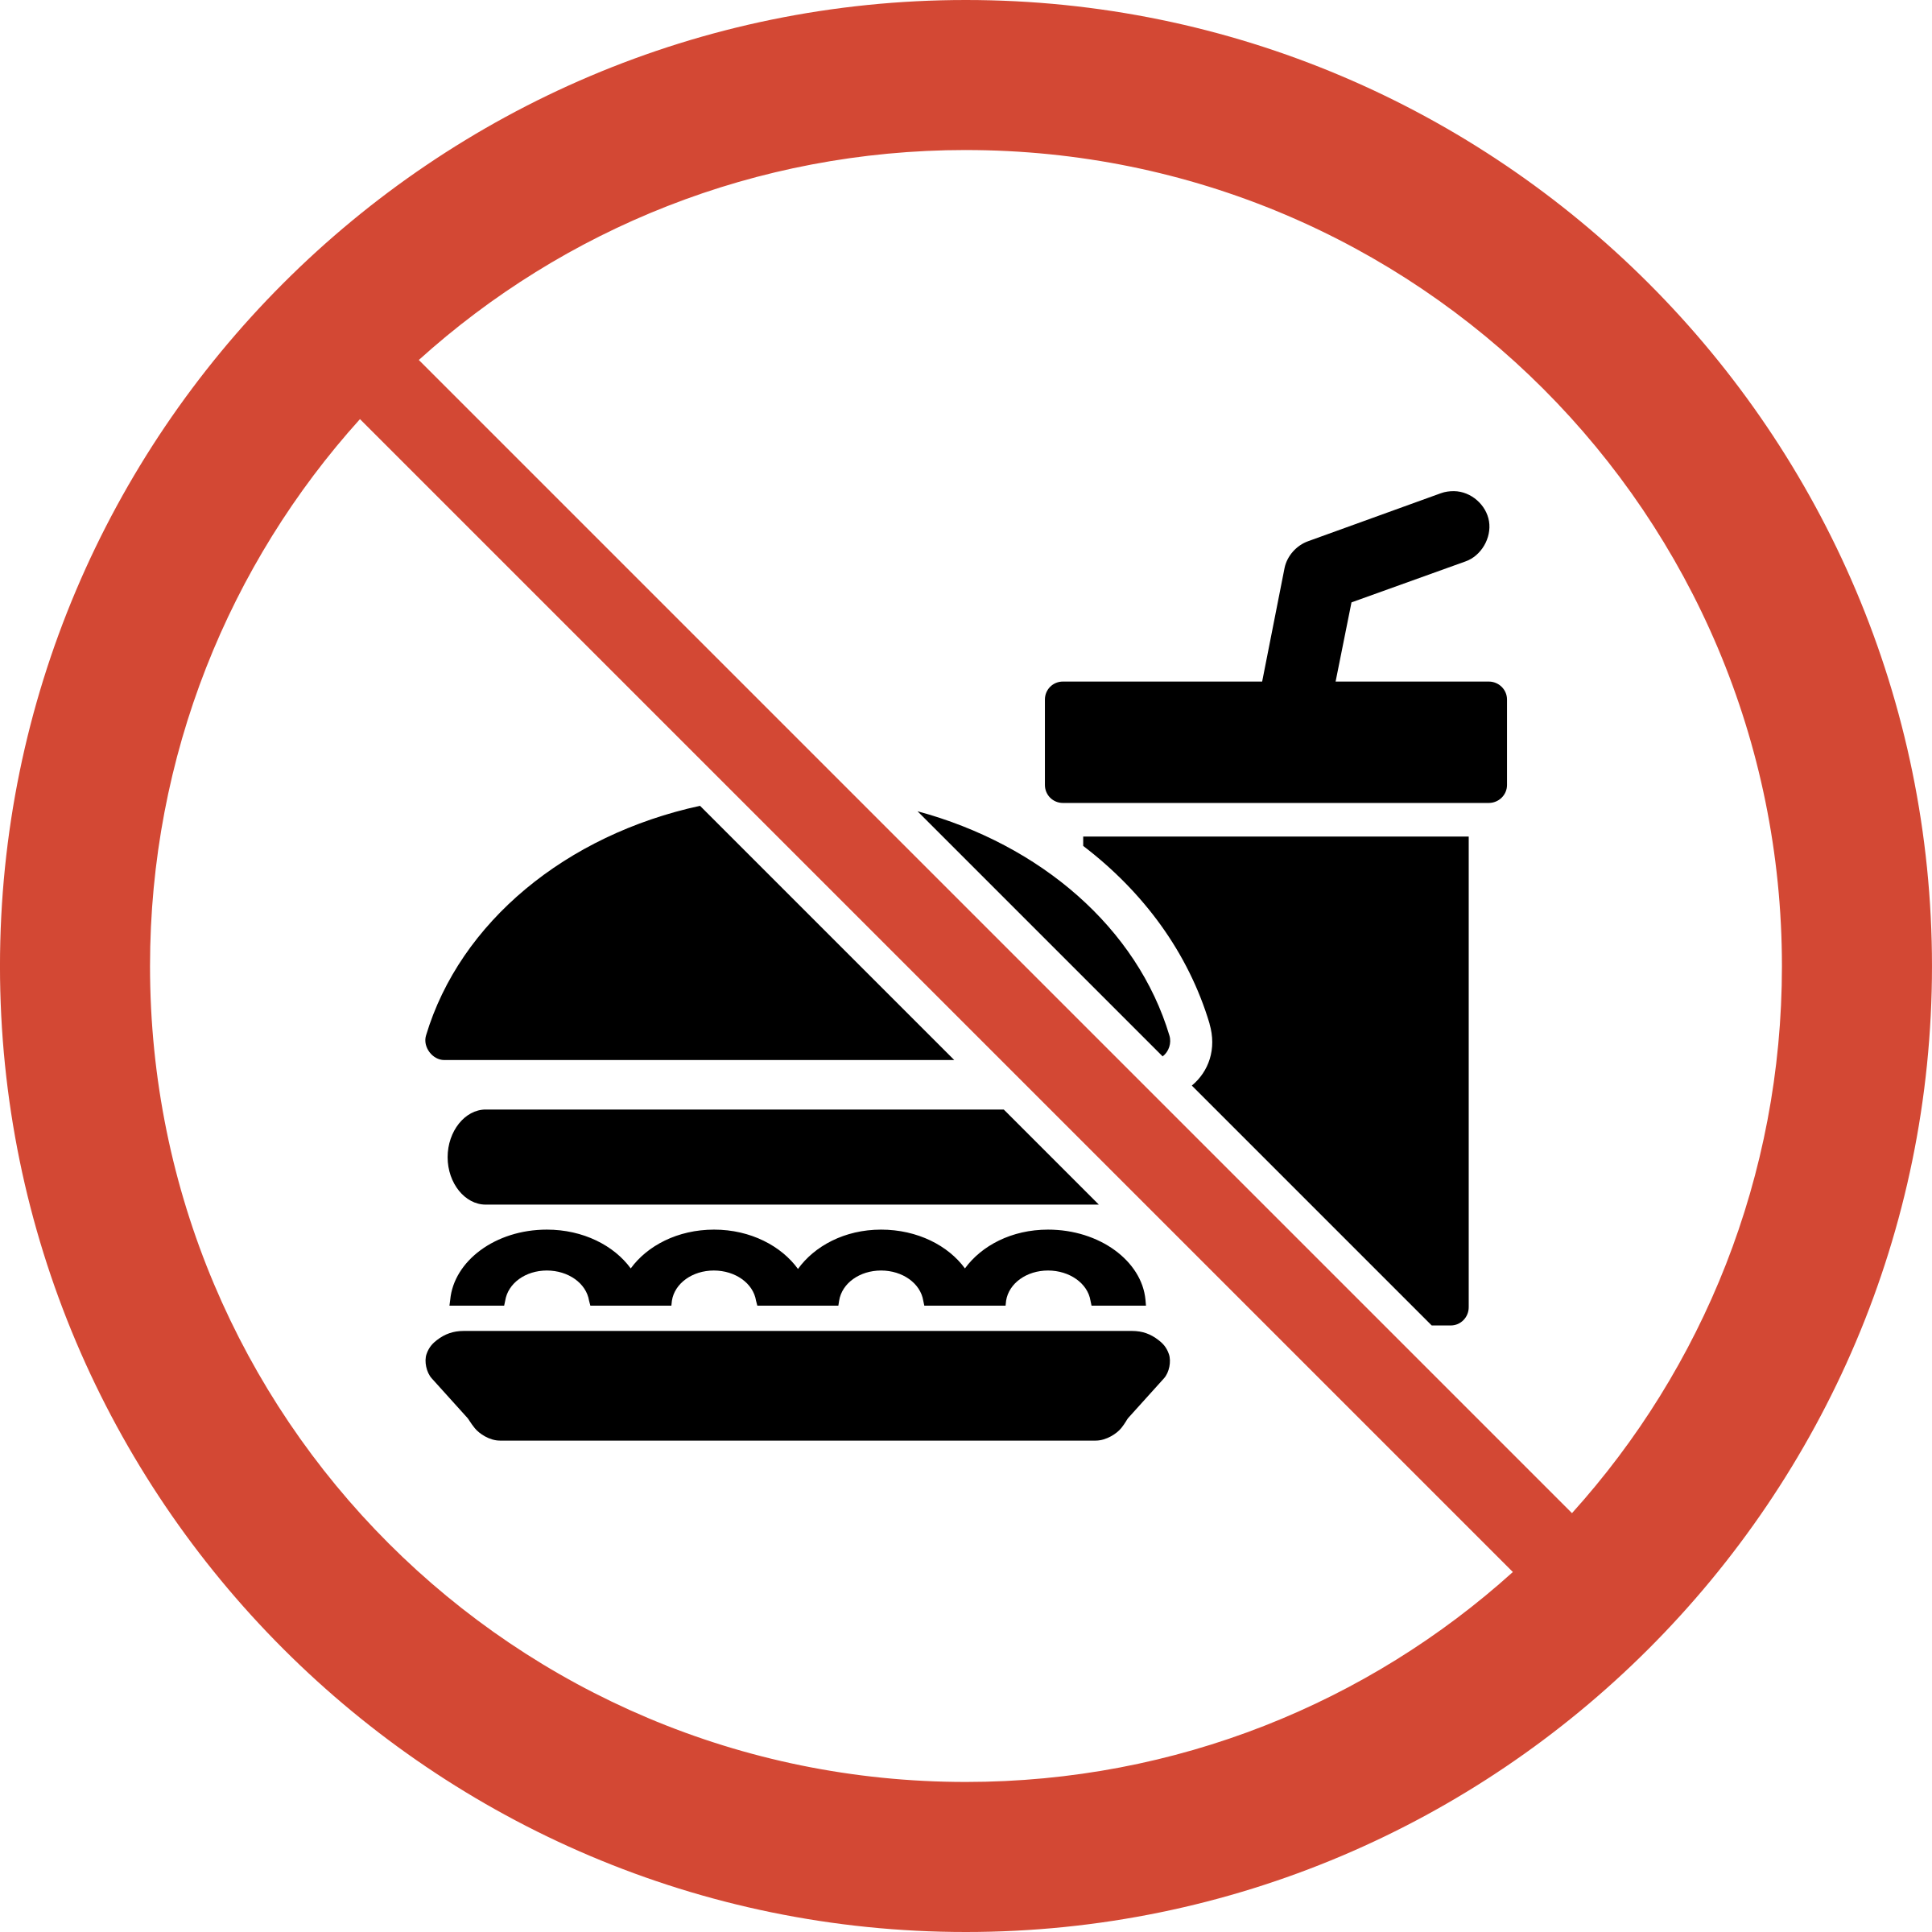 No food or drink png. Sign icons free and